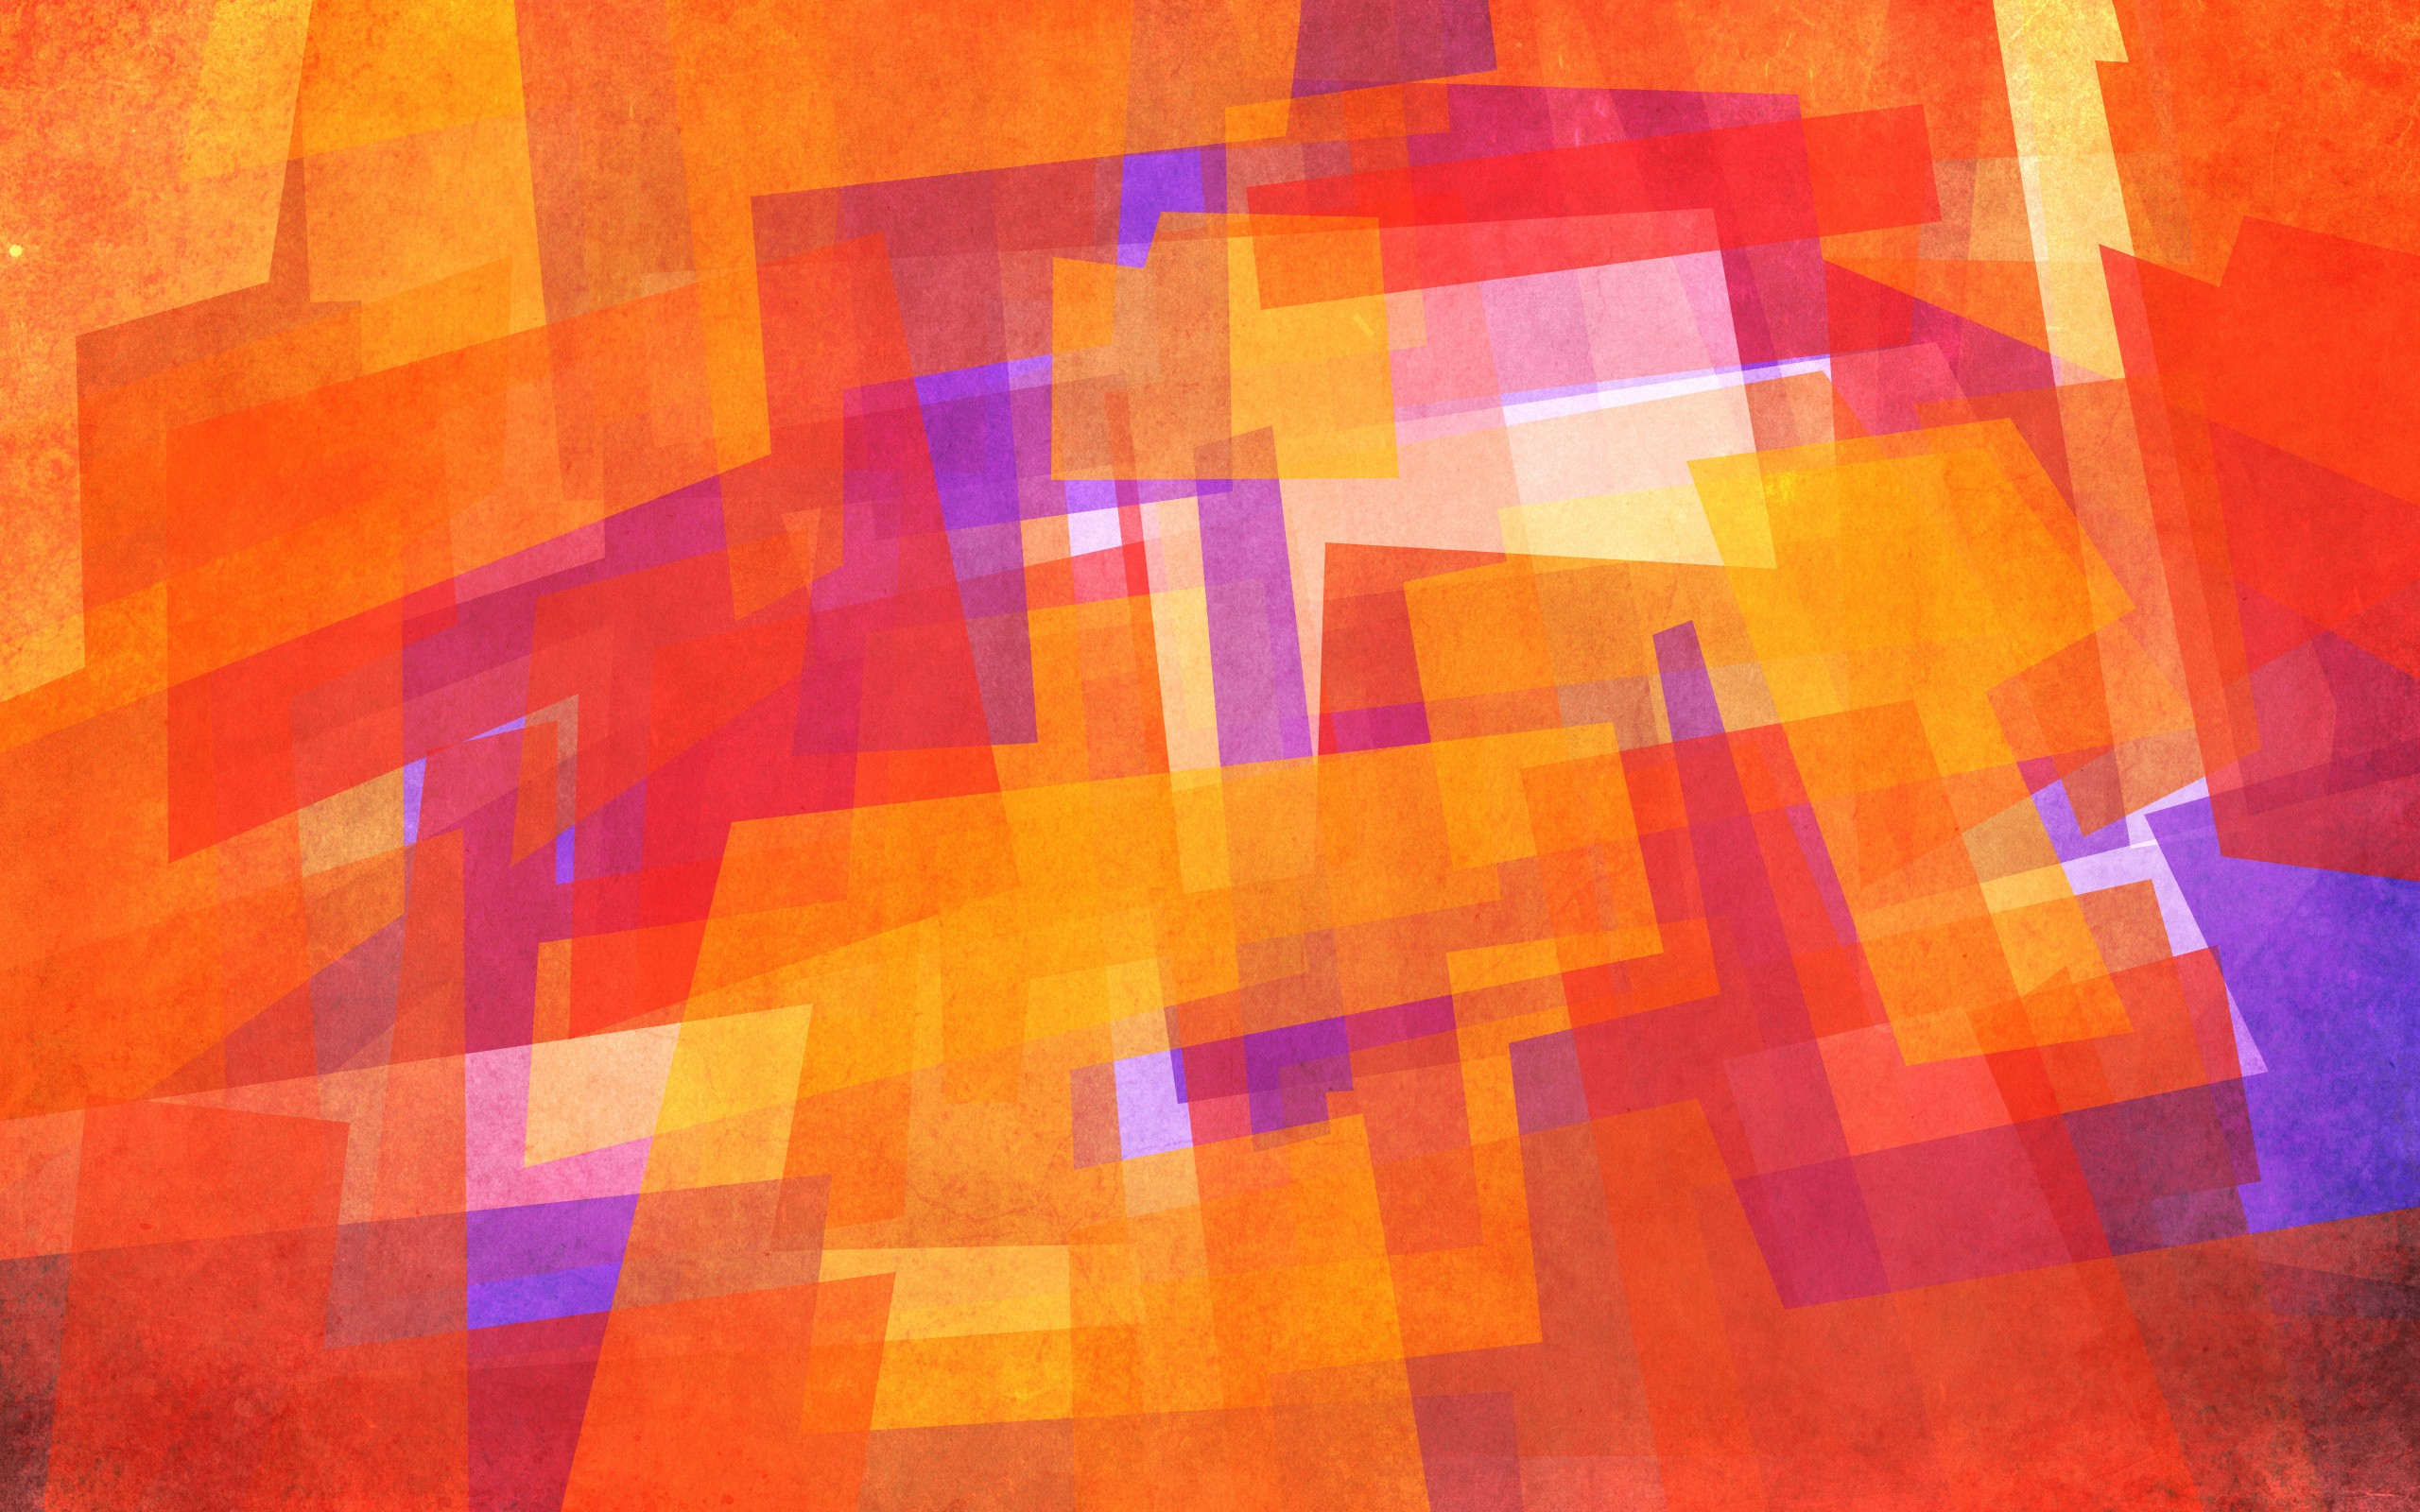 Abstract Colorful Wallpaper 2560x1600 Abstract Colorful Textures 2560x1600